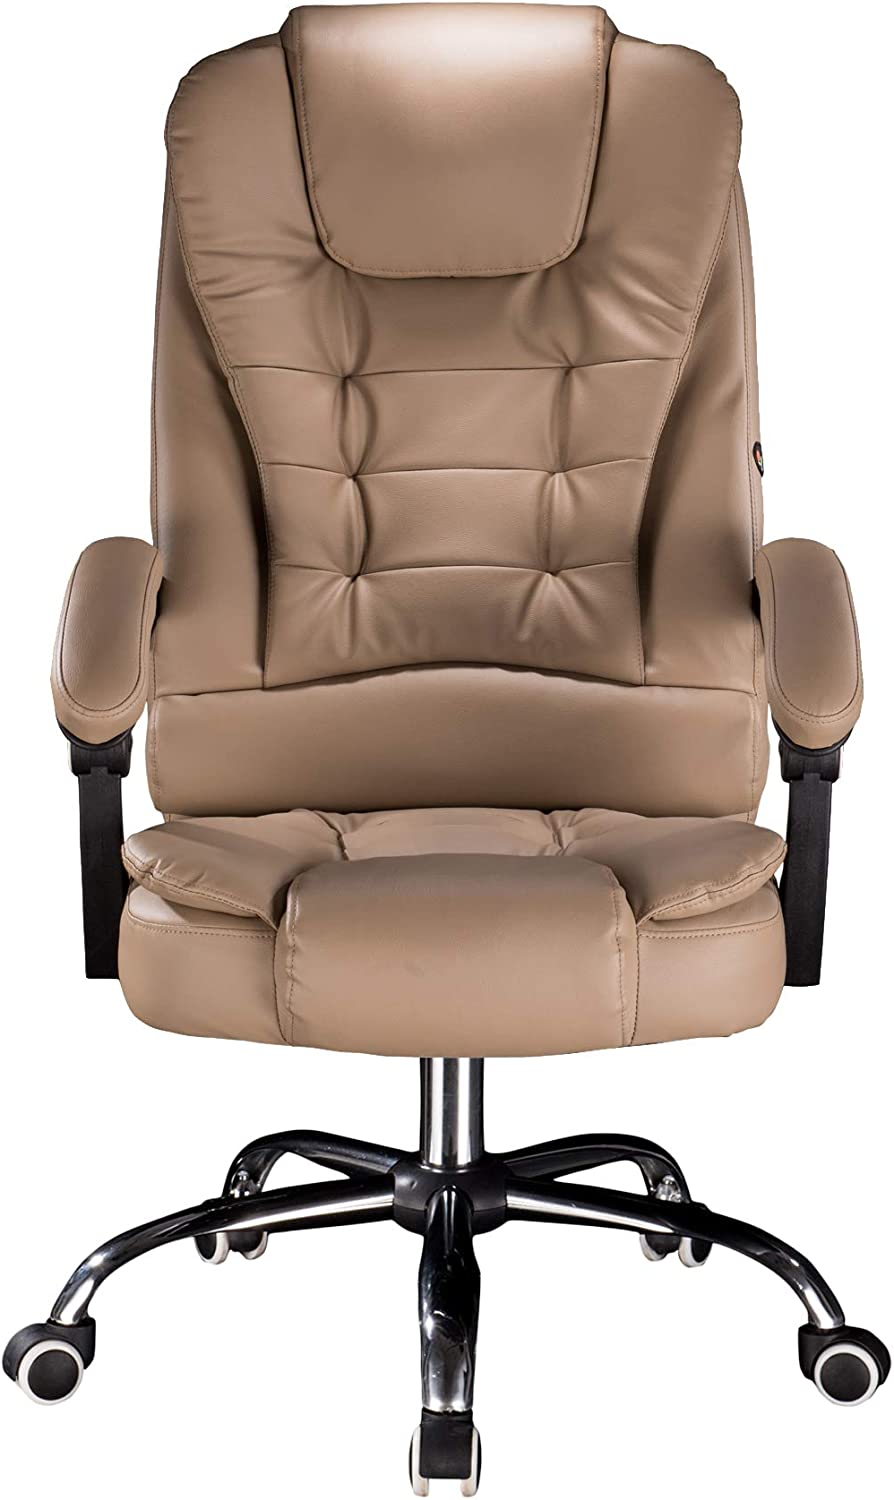 Cosyshow Comfort Genuine Leather High Back Executive Office Desk Chair Ergonomic Adjustable Recliner Computer PC Gaming Chair Footrest Armrest (Khaki)